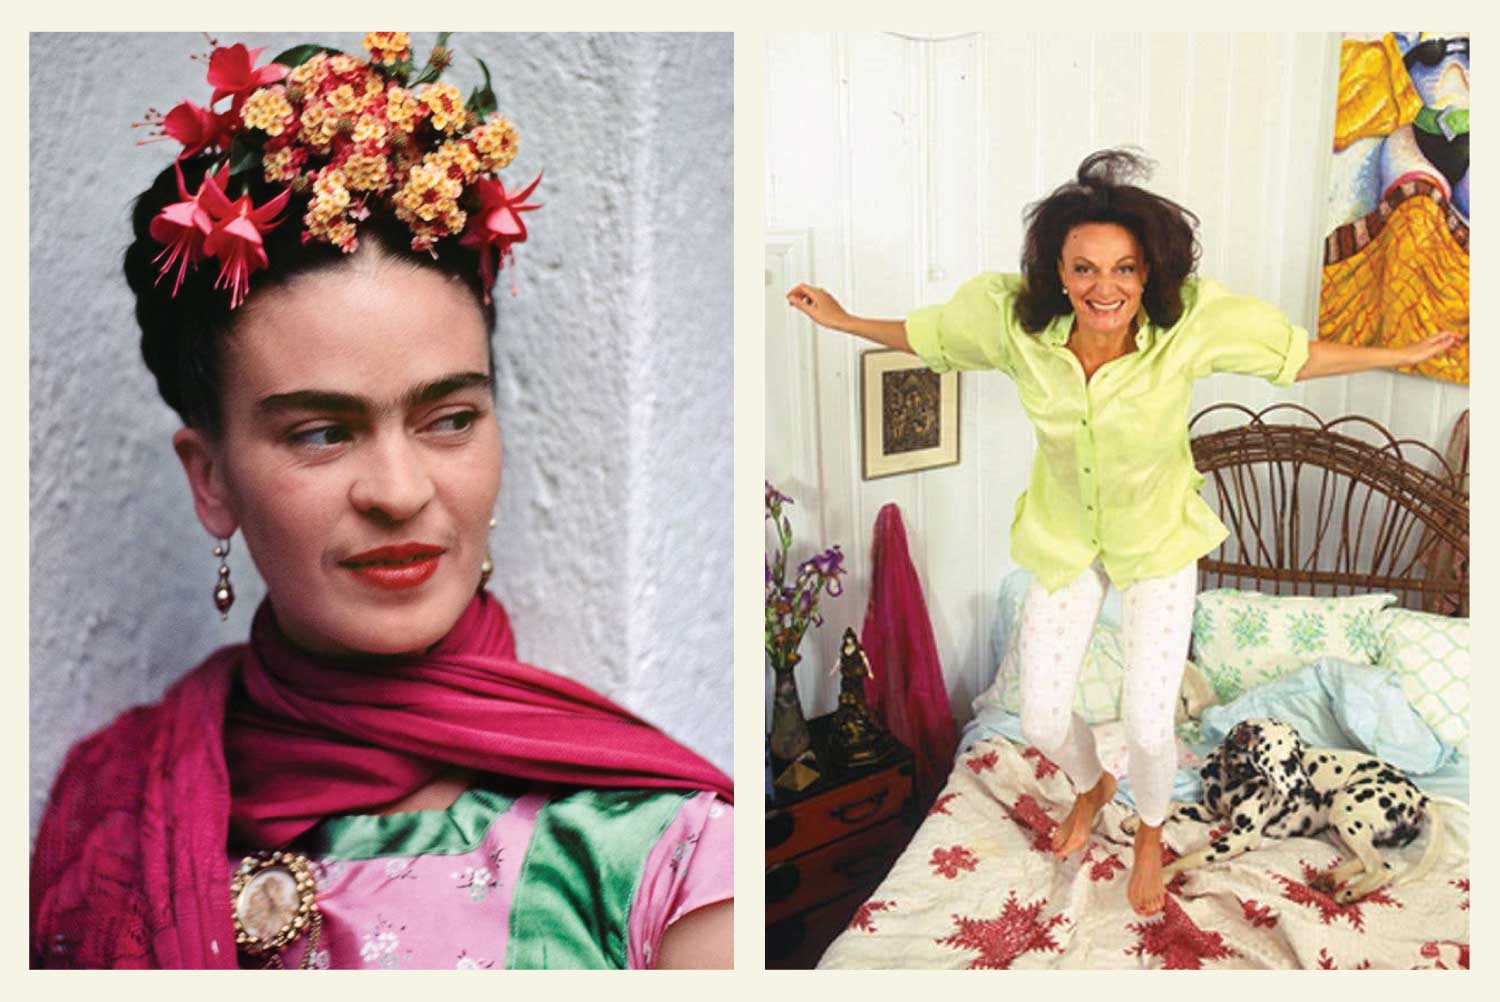 Photograph of Frida Kahlo on the left, Photograph of Diane von Furstenberg jumping on a bed on the right